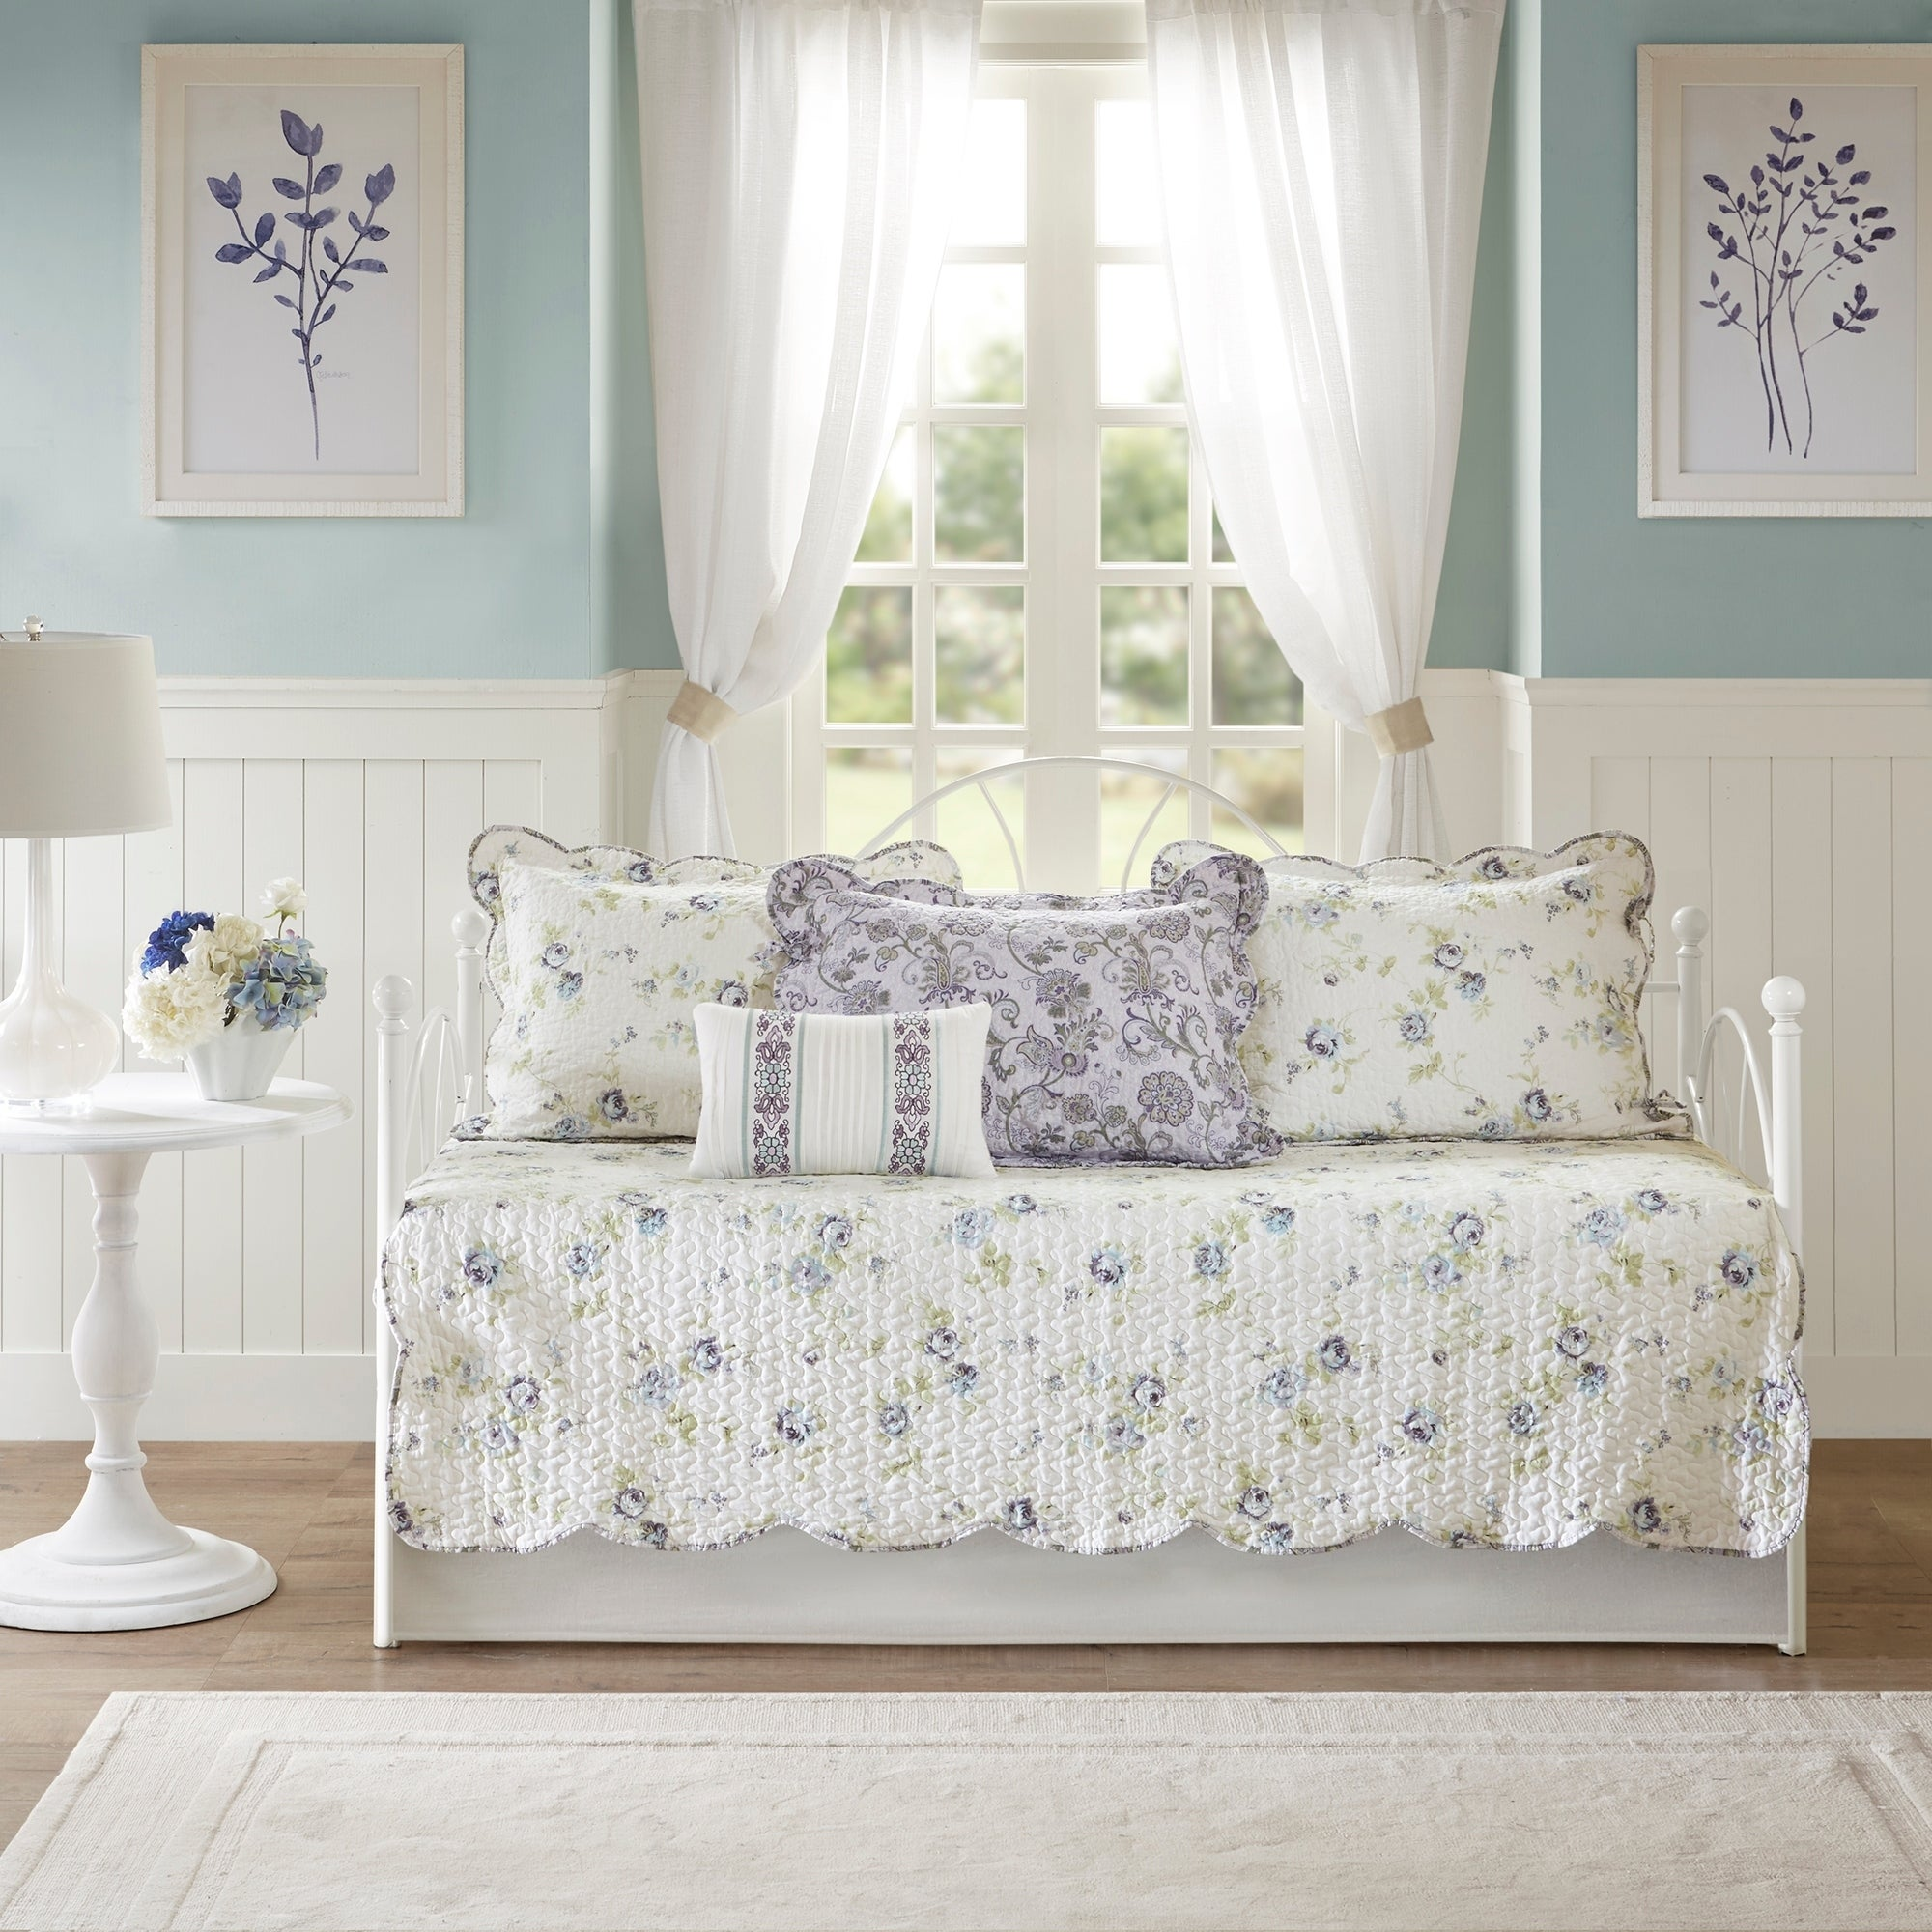 Sensational Shabby Chic Daybed Covers Sets Find Great Bedding Deals Interior Design Ideas Philsoteloinfo